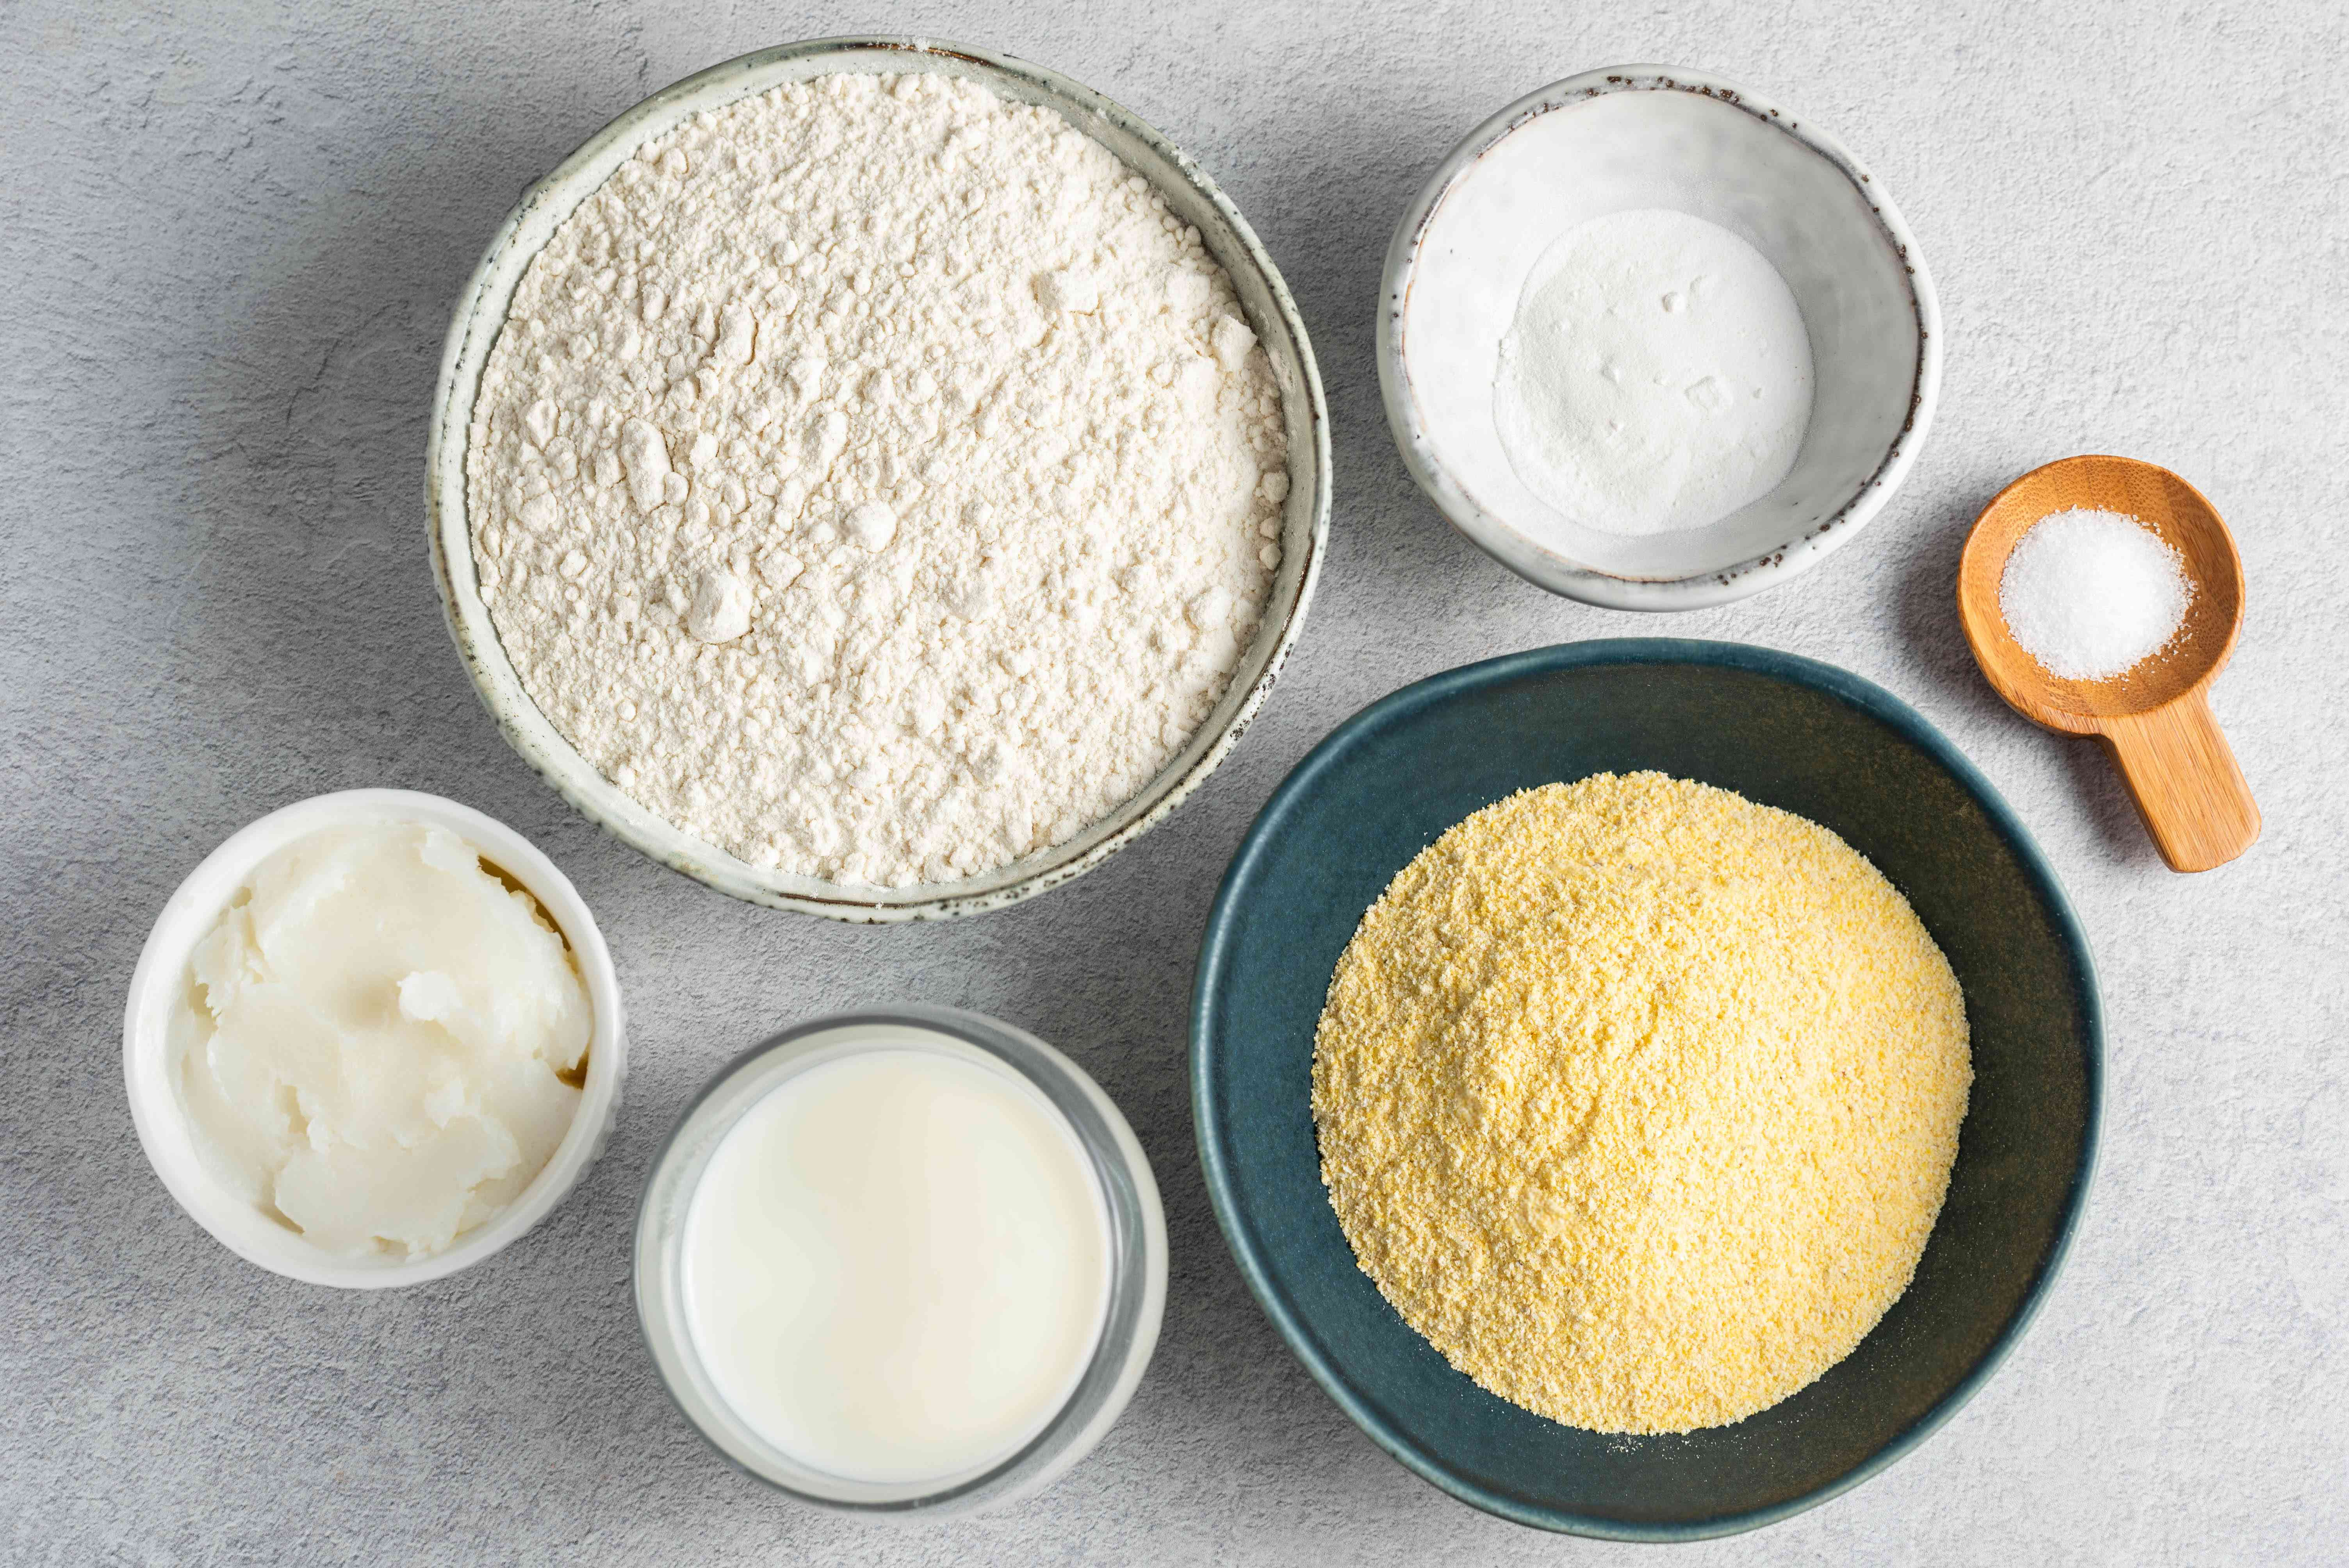 Easy cornmeal biscuits